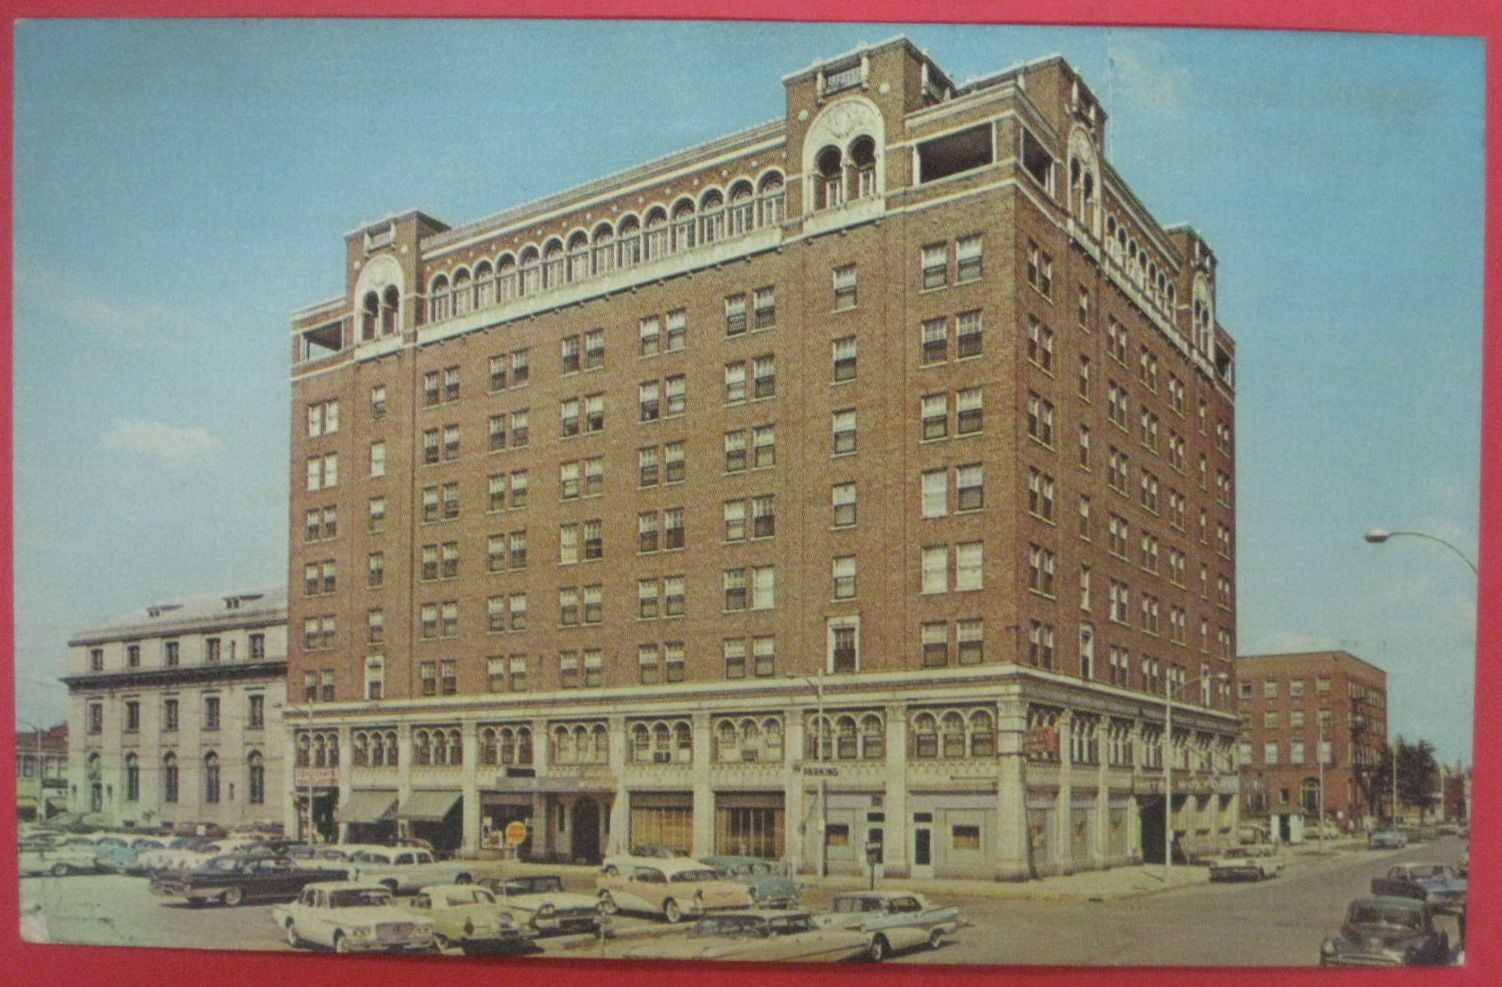 Danville Il The Wolford Hotel Room Key 610 Pinterest Vintage Hotels